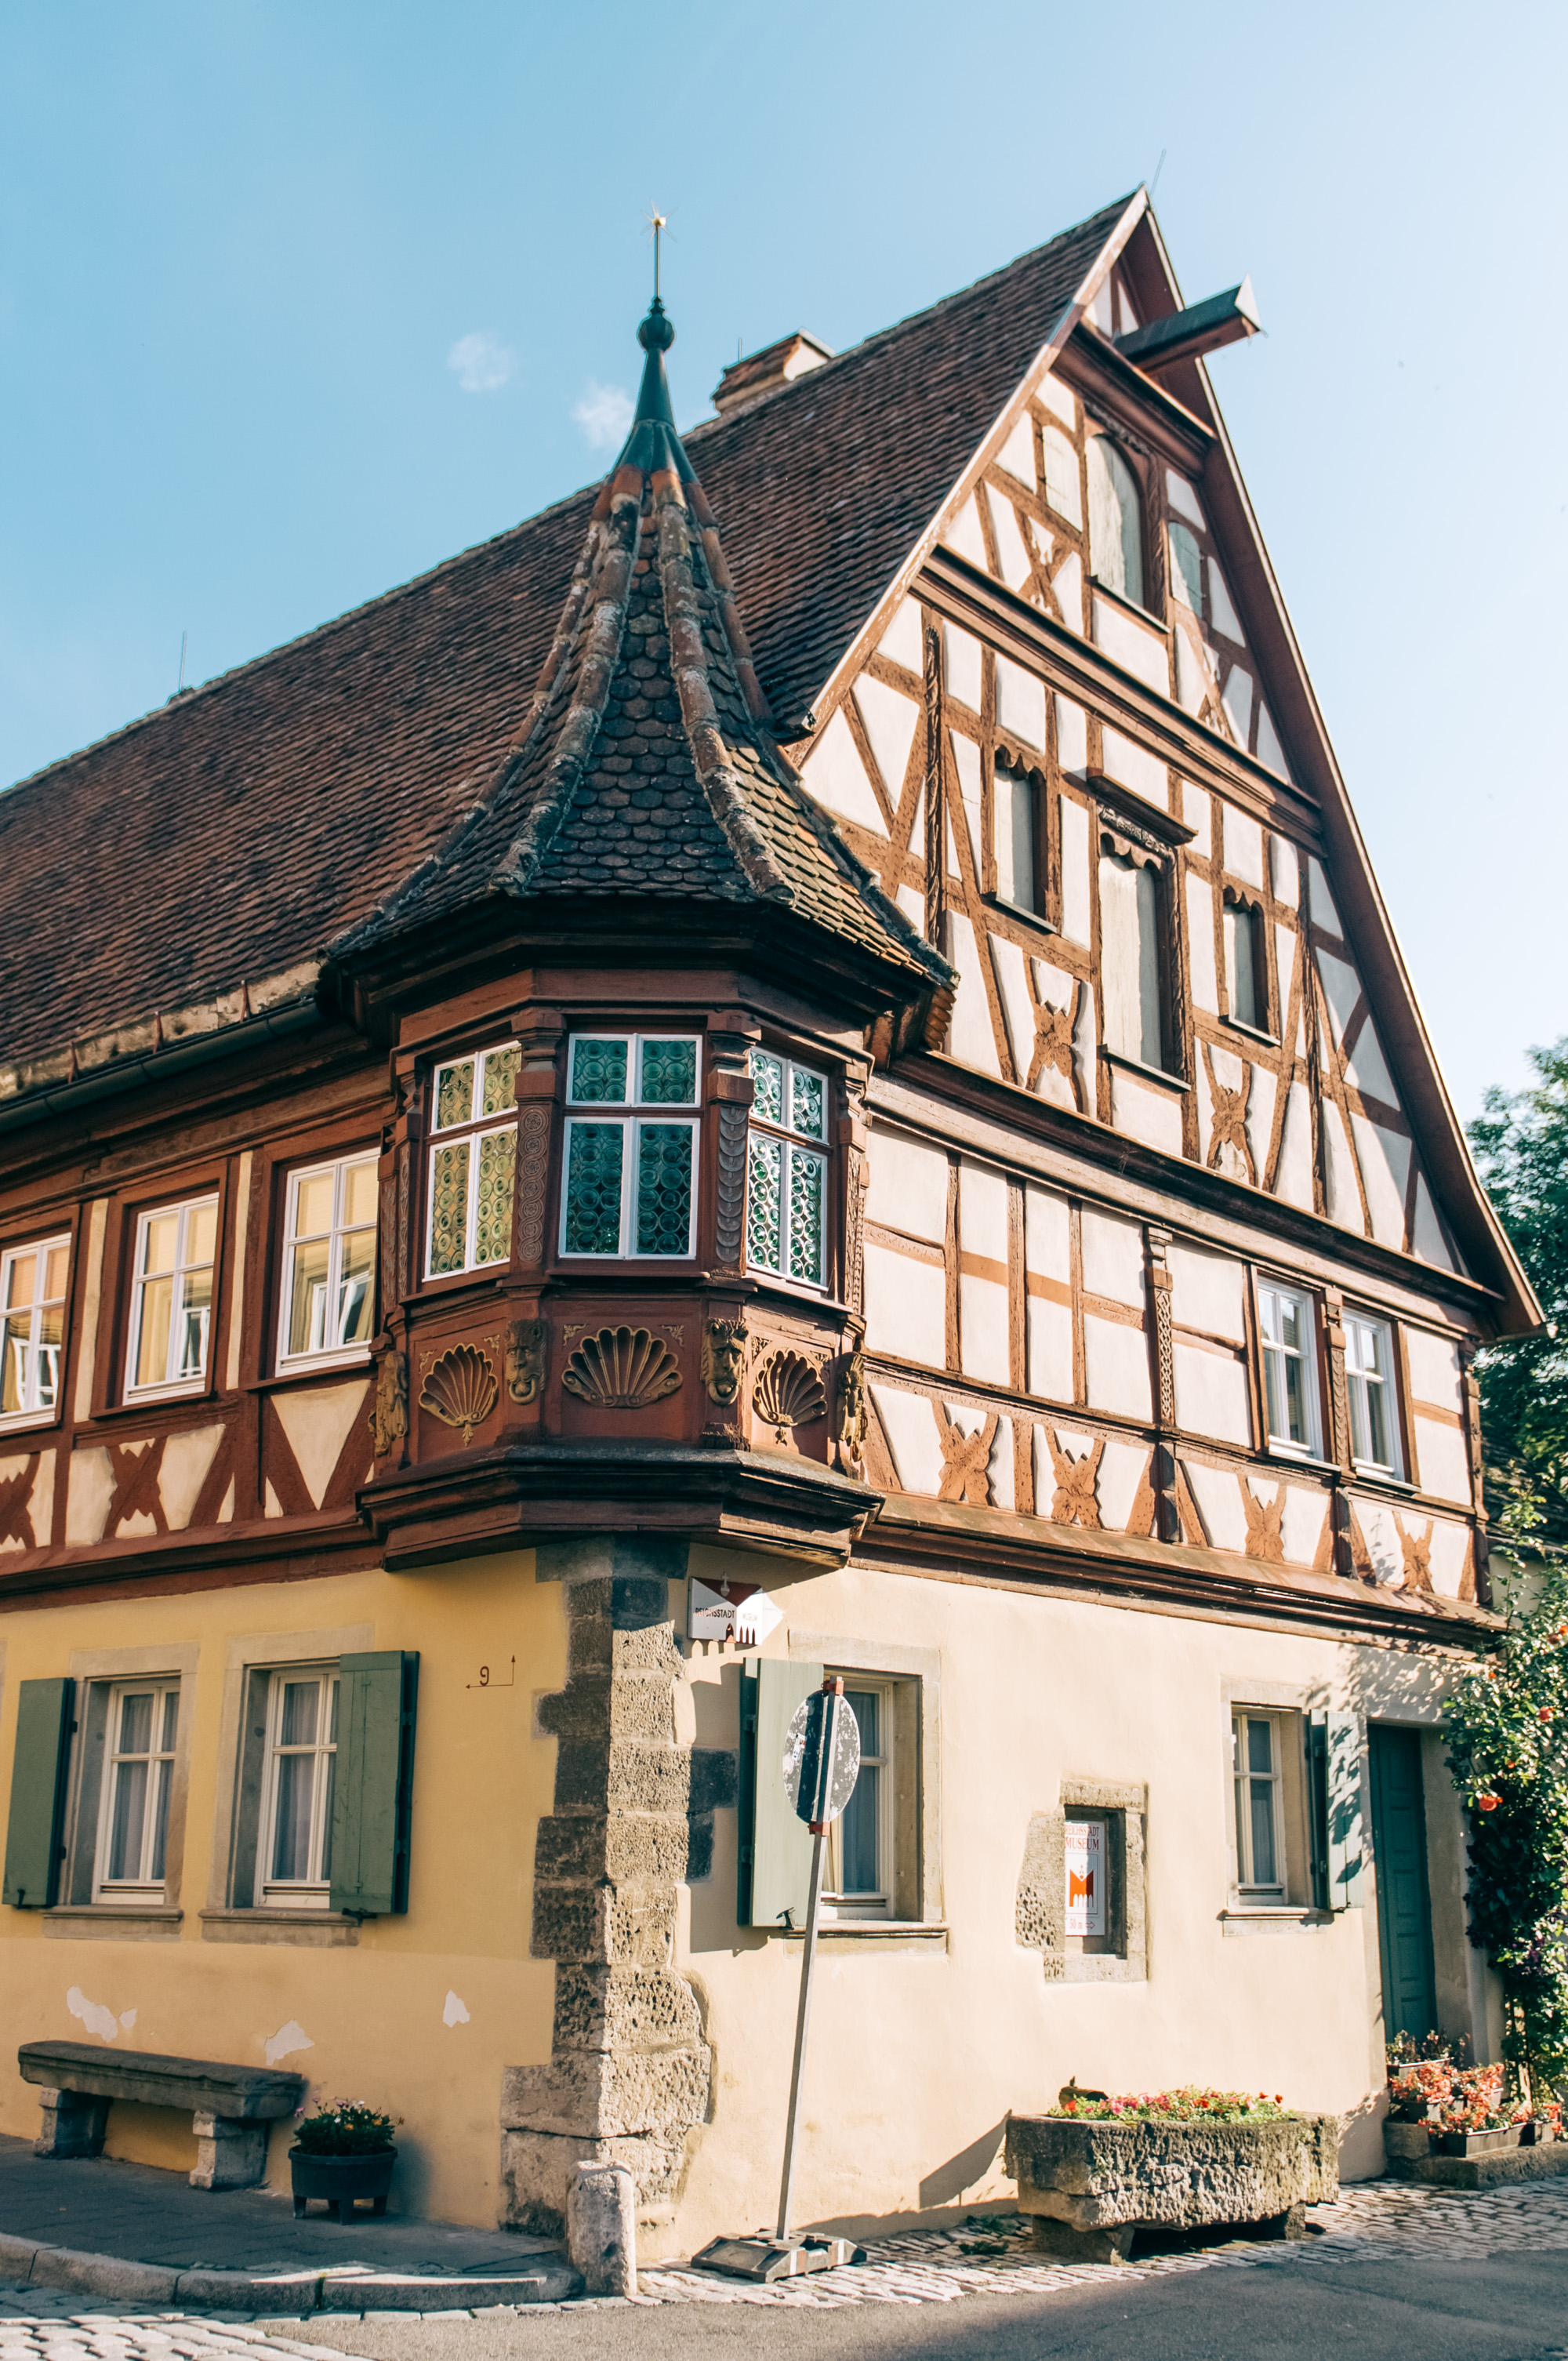 rothenburg-xavier-manhing-10.jpg